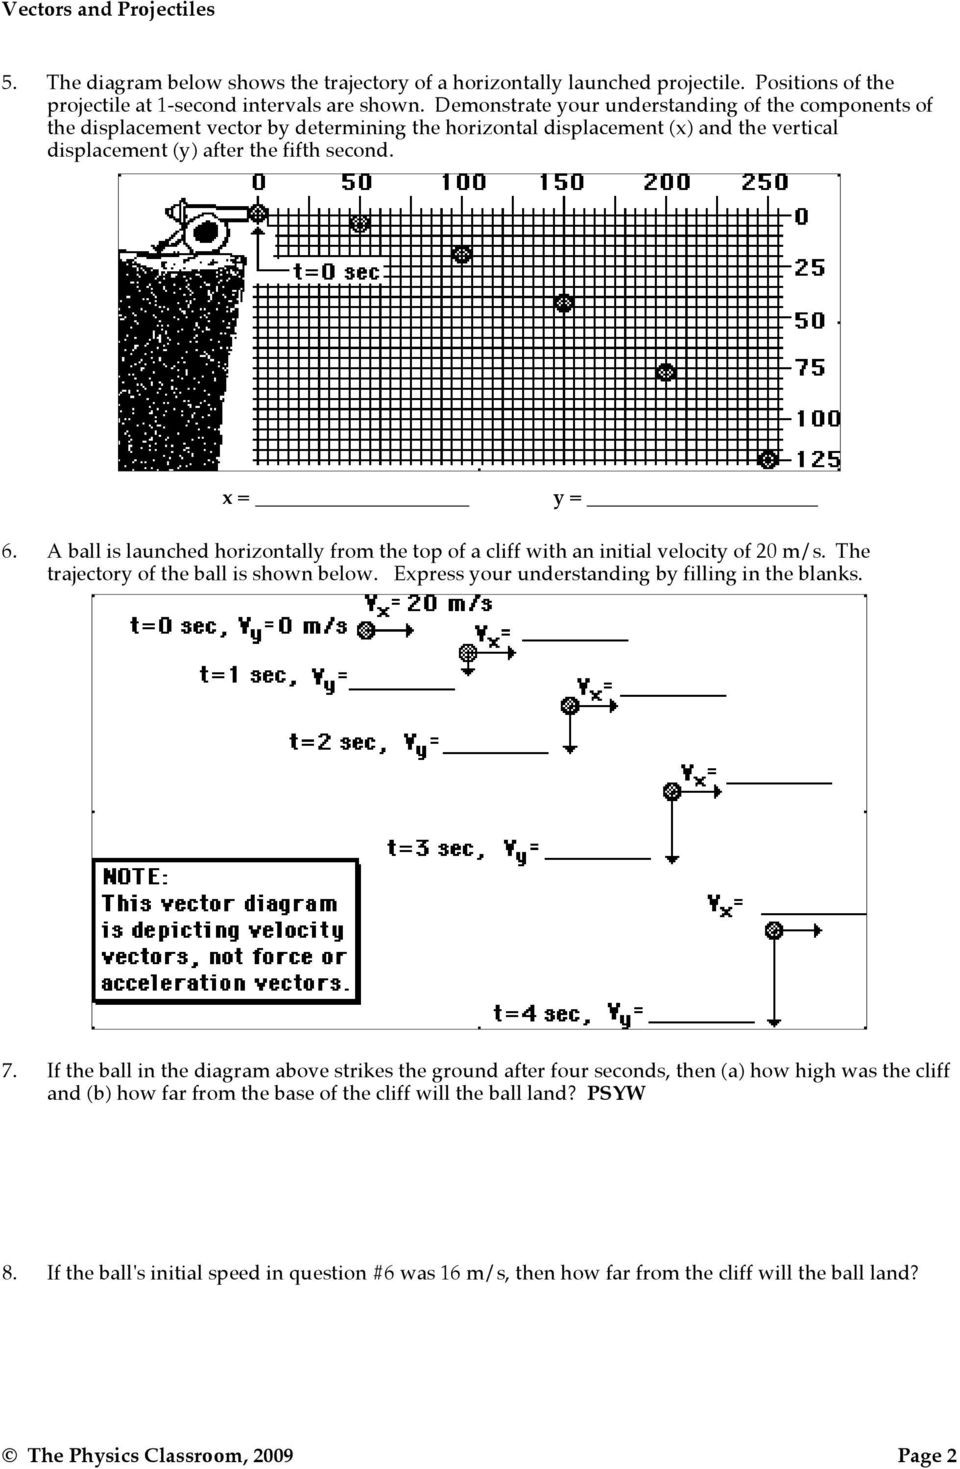 Projectile Motion Worksheet Answers Projectile Motion Vectors and Projectiles Pdf Free Download